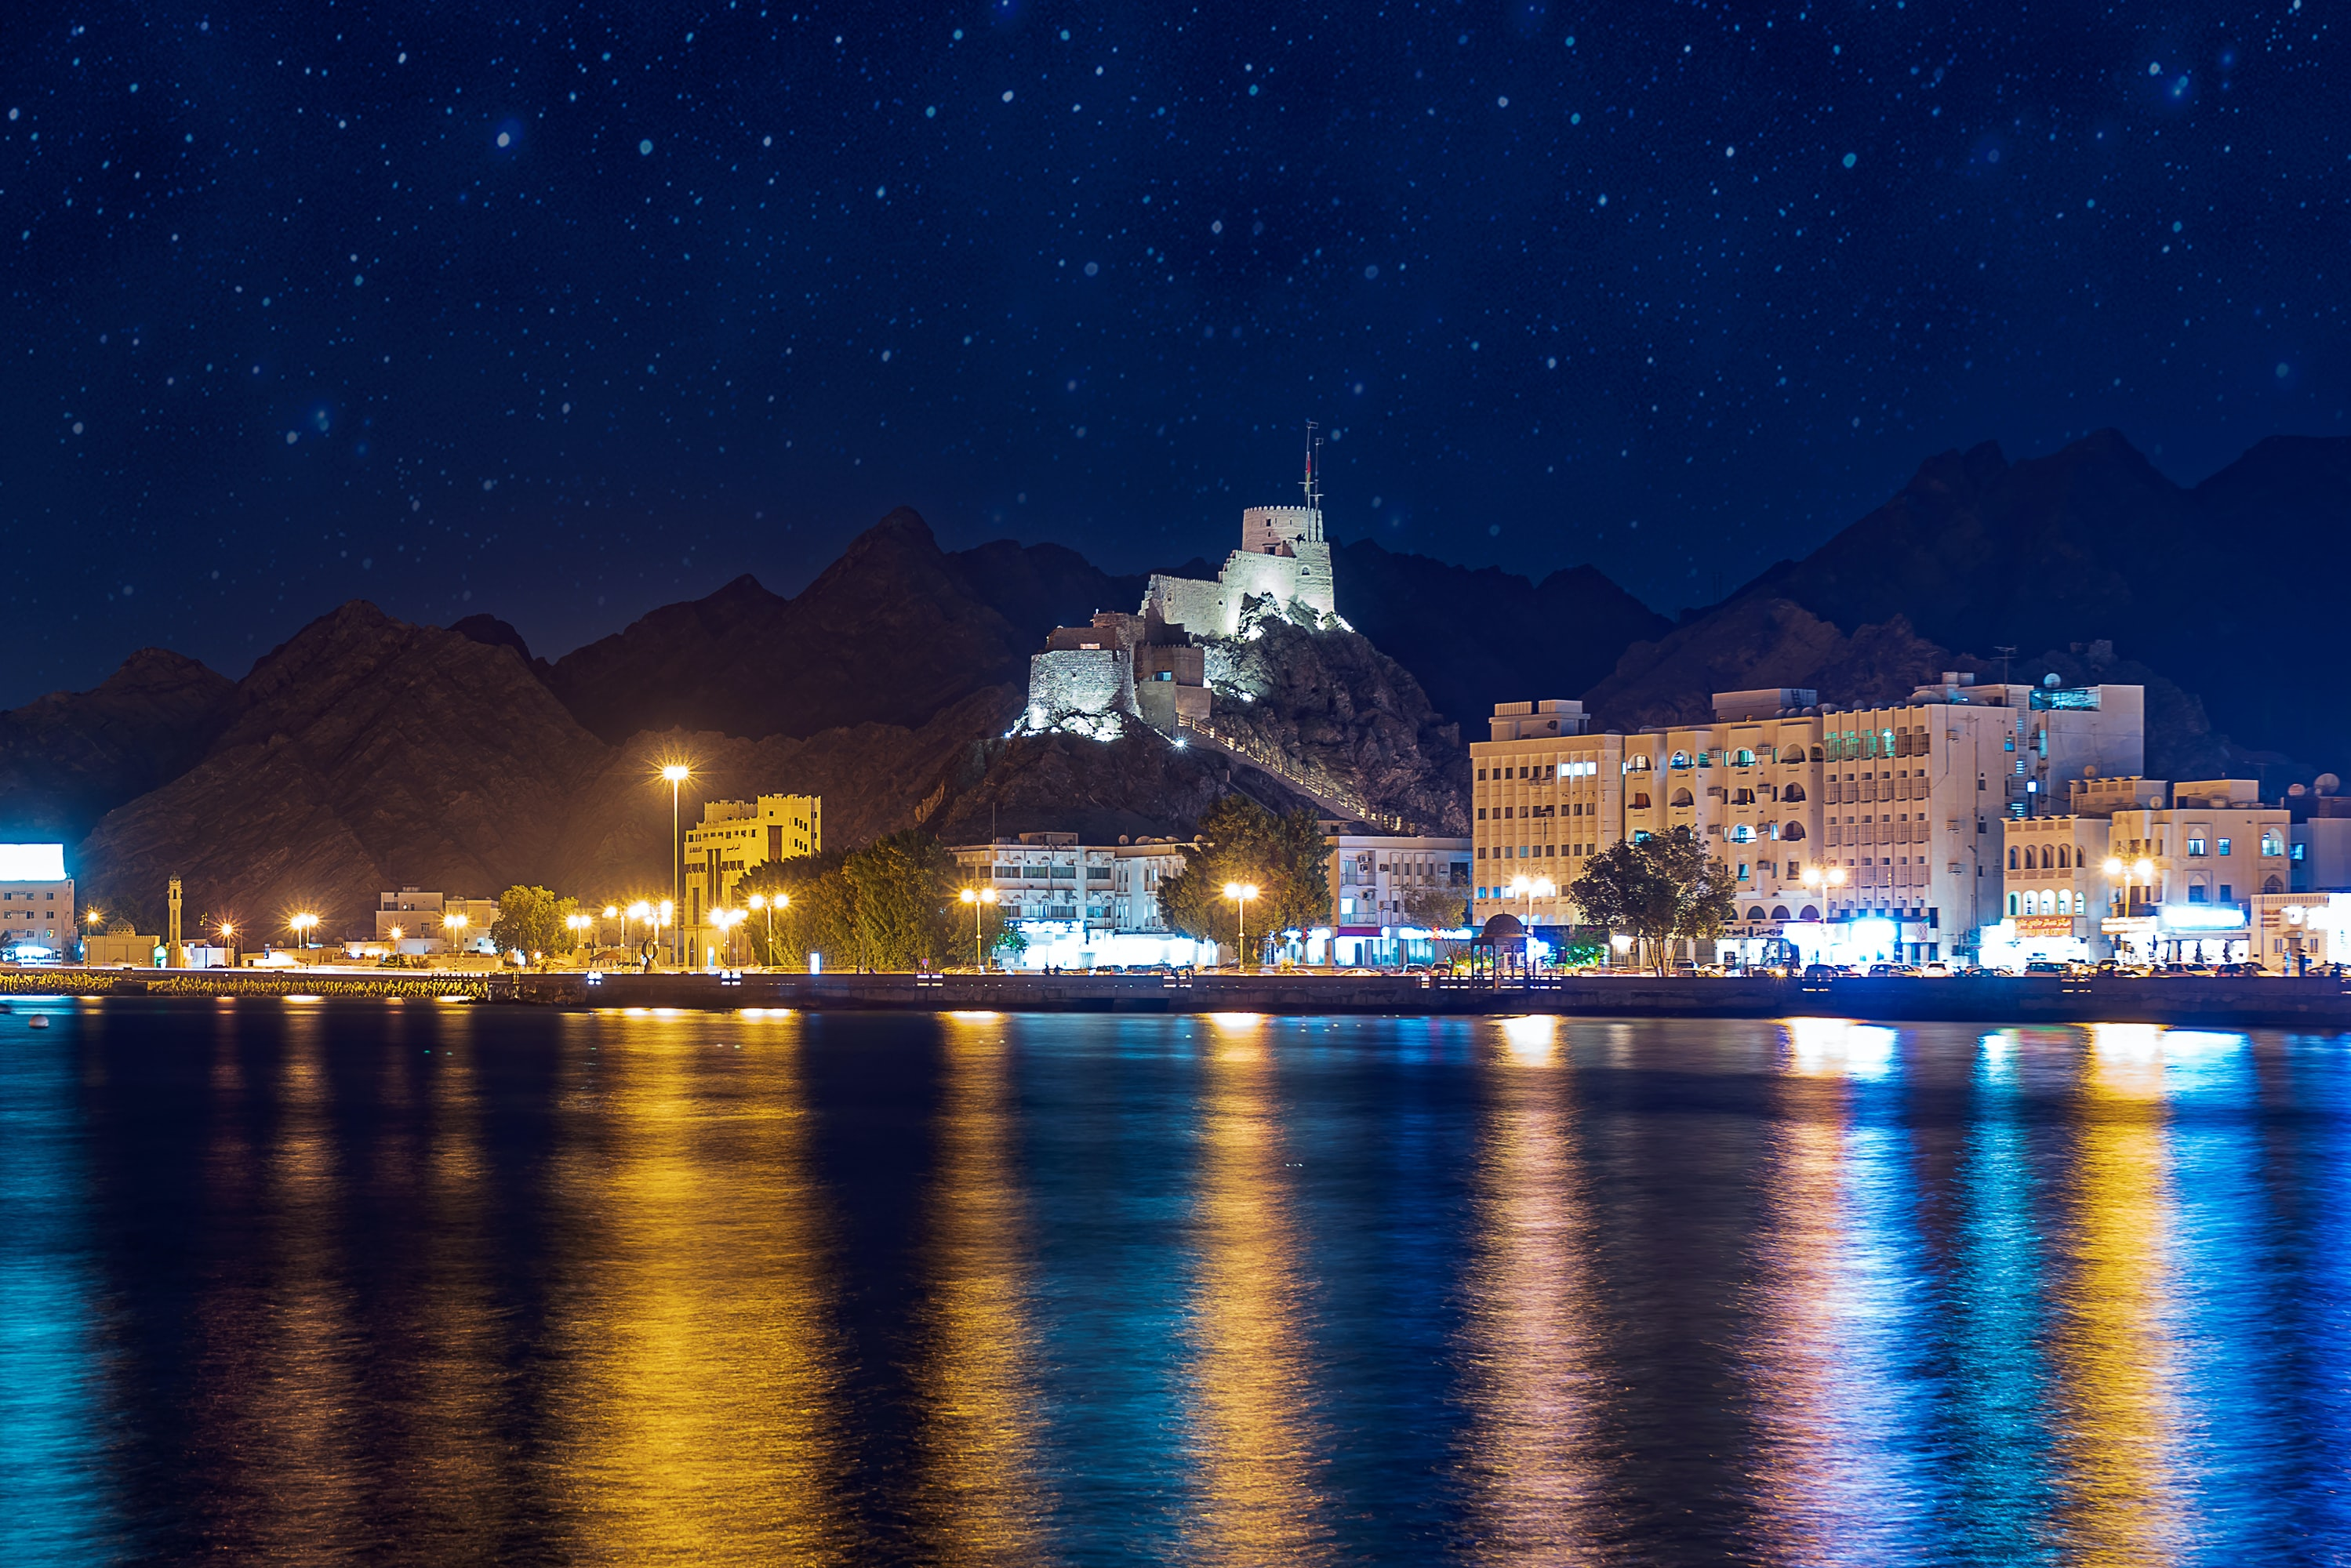 Covid-19: Lockdown extended in Muscat